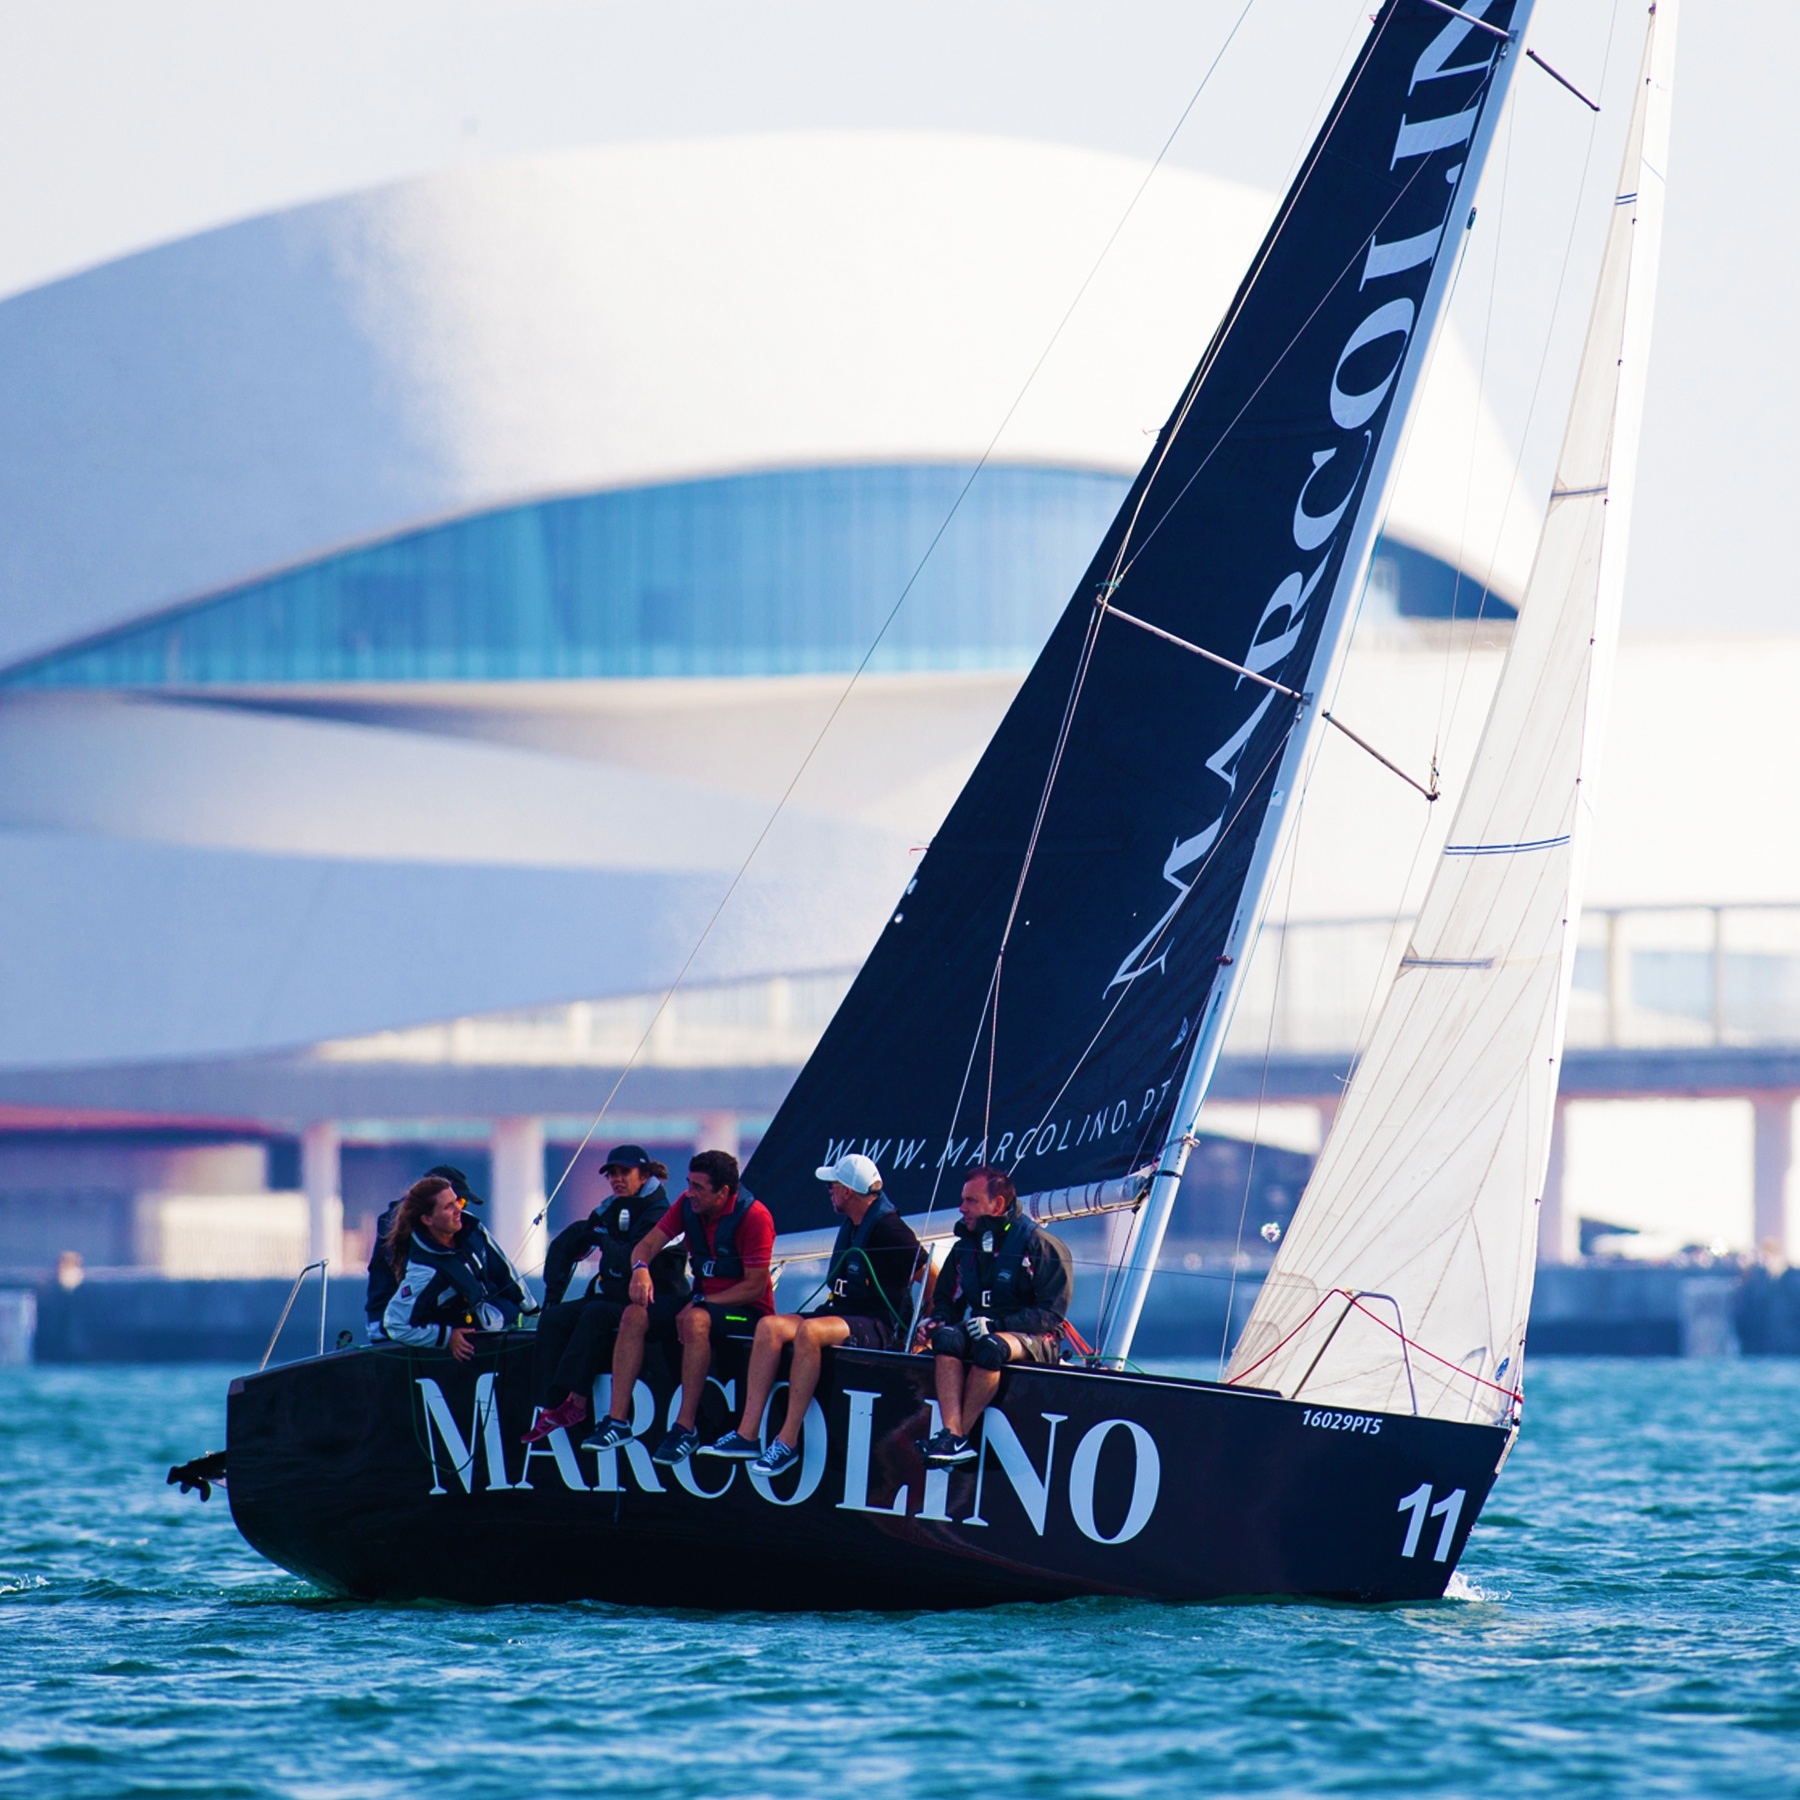 Marcolino | BBDouro - We do Sailing